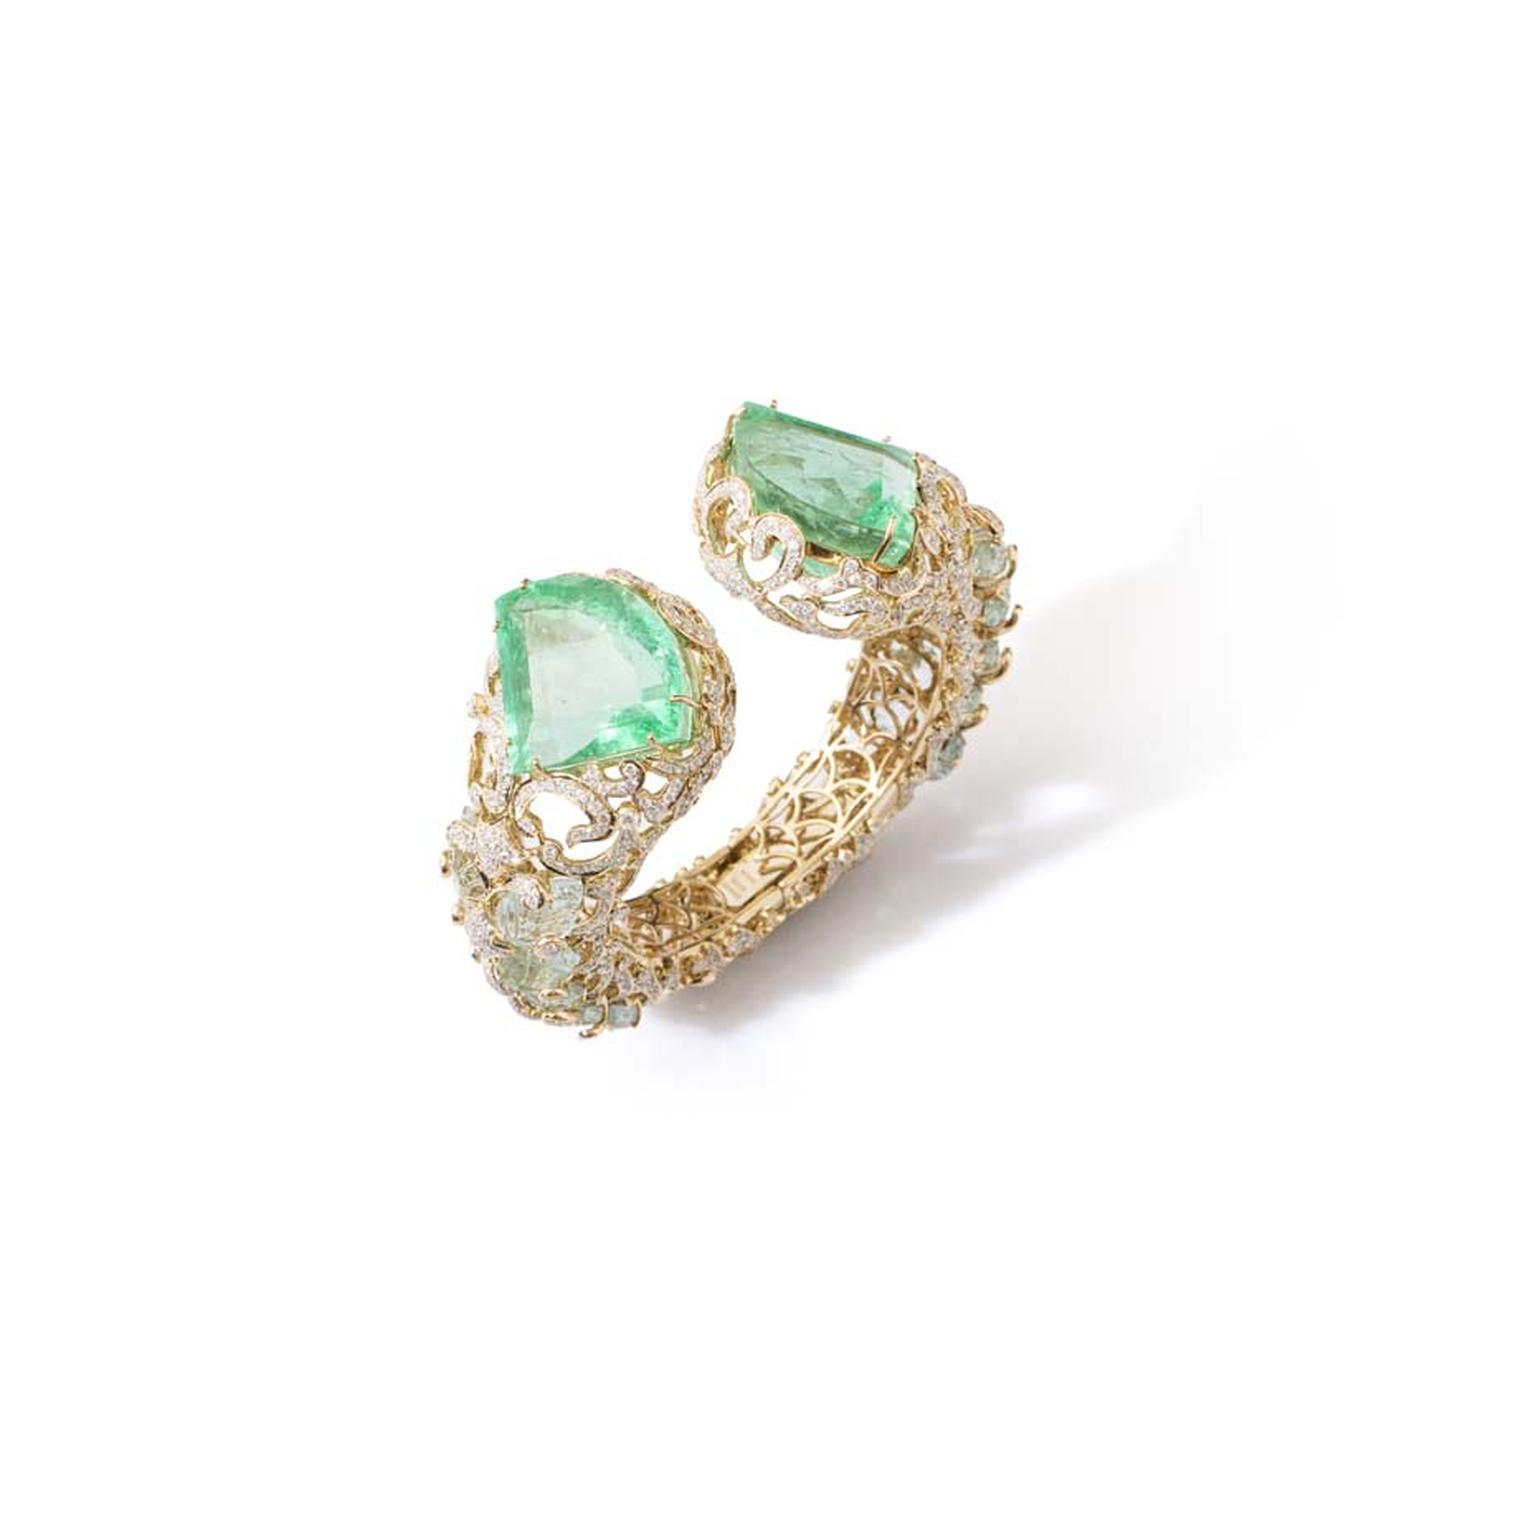 Fahra Khan_Le Jardin Exotique_An ornate kite-shaped Columbian emerald cuff weighing 151.24cts, set with carved aquamarine leaves in 18ct yellow gold and diamonds.jpg